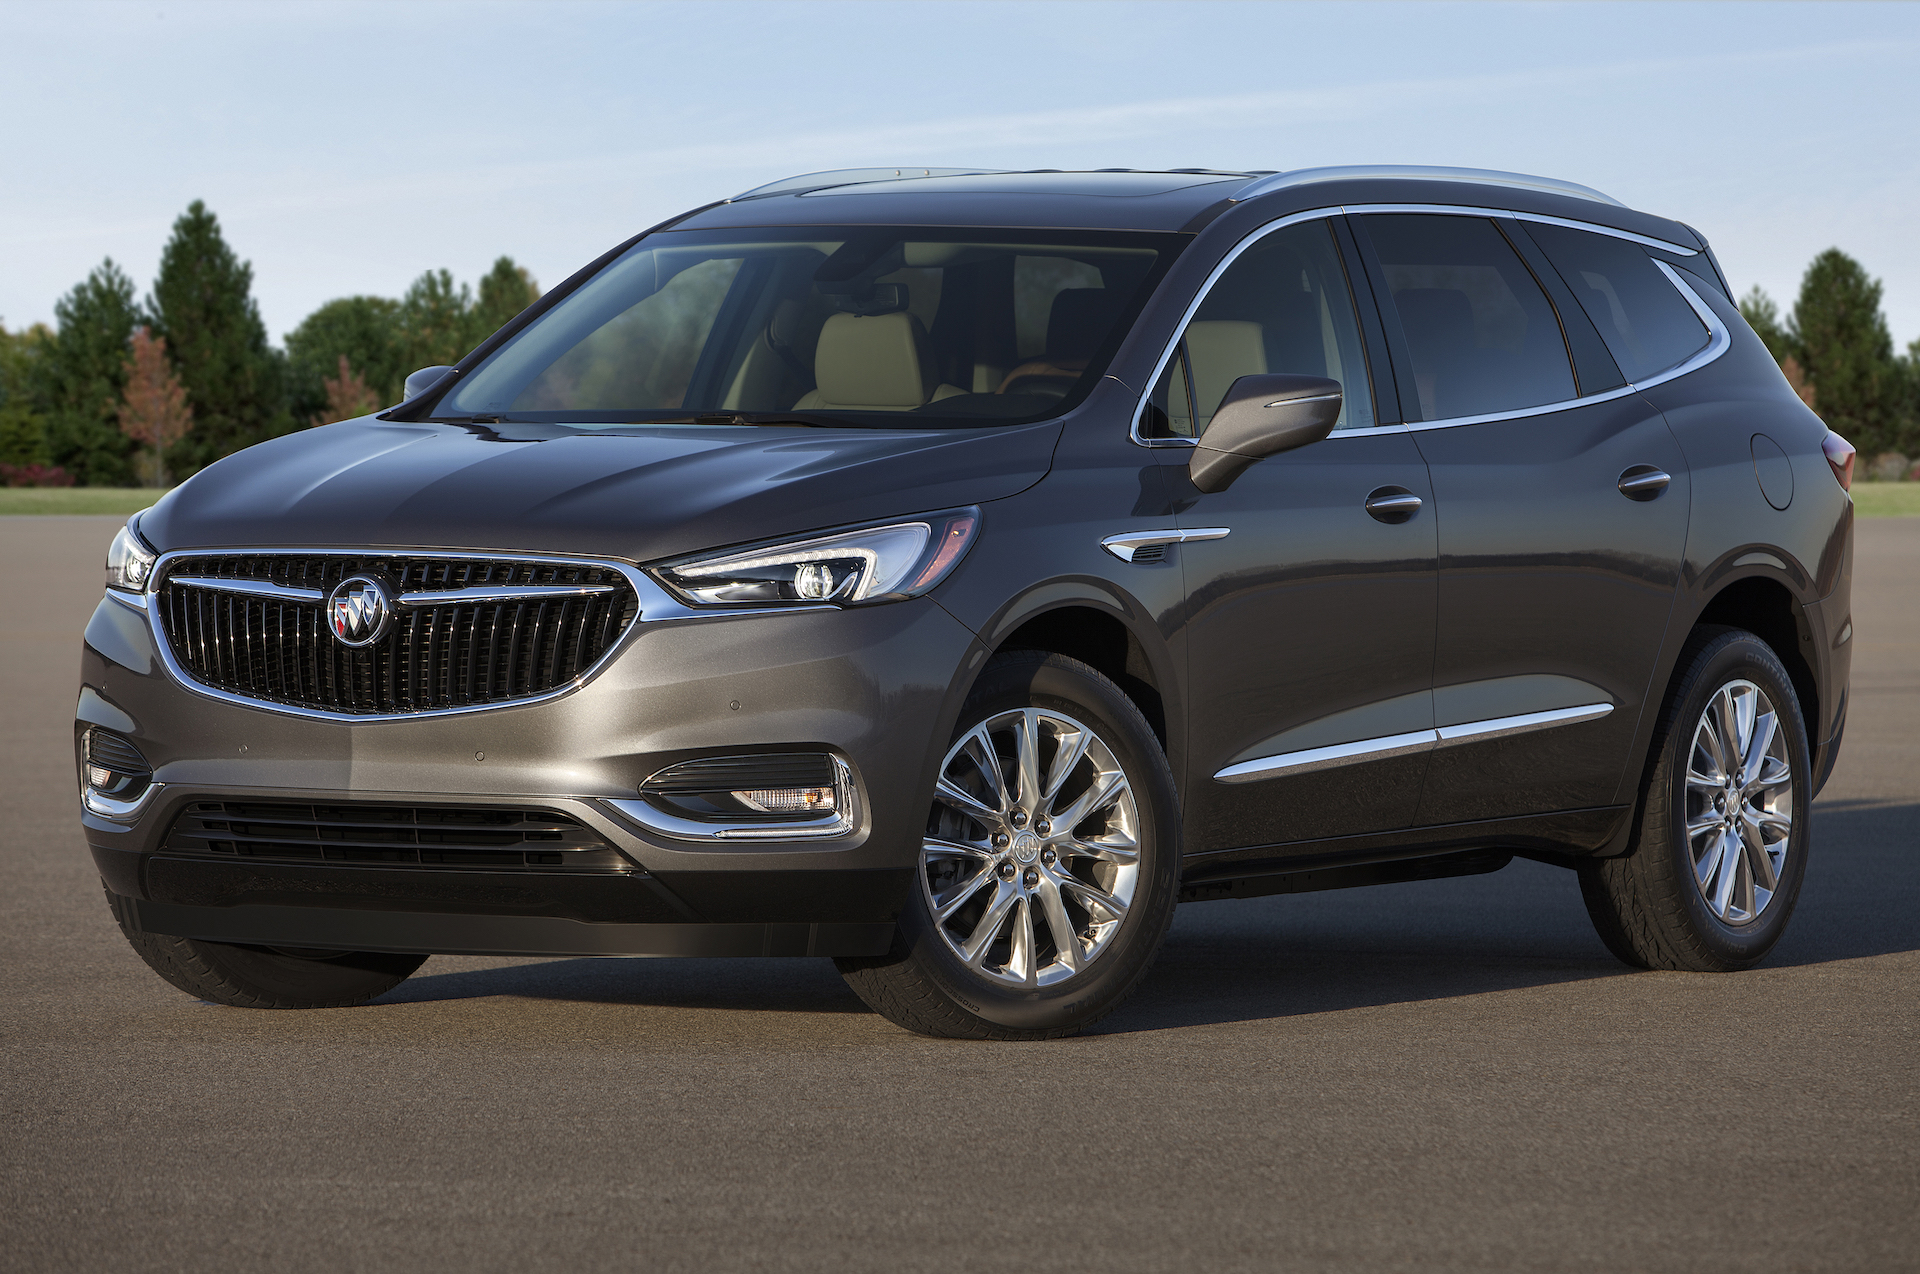 new 2021 buick enclave interior pictures invoice price